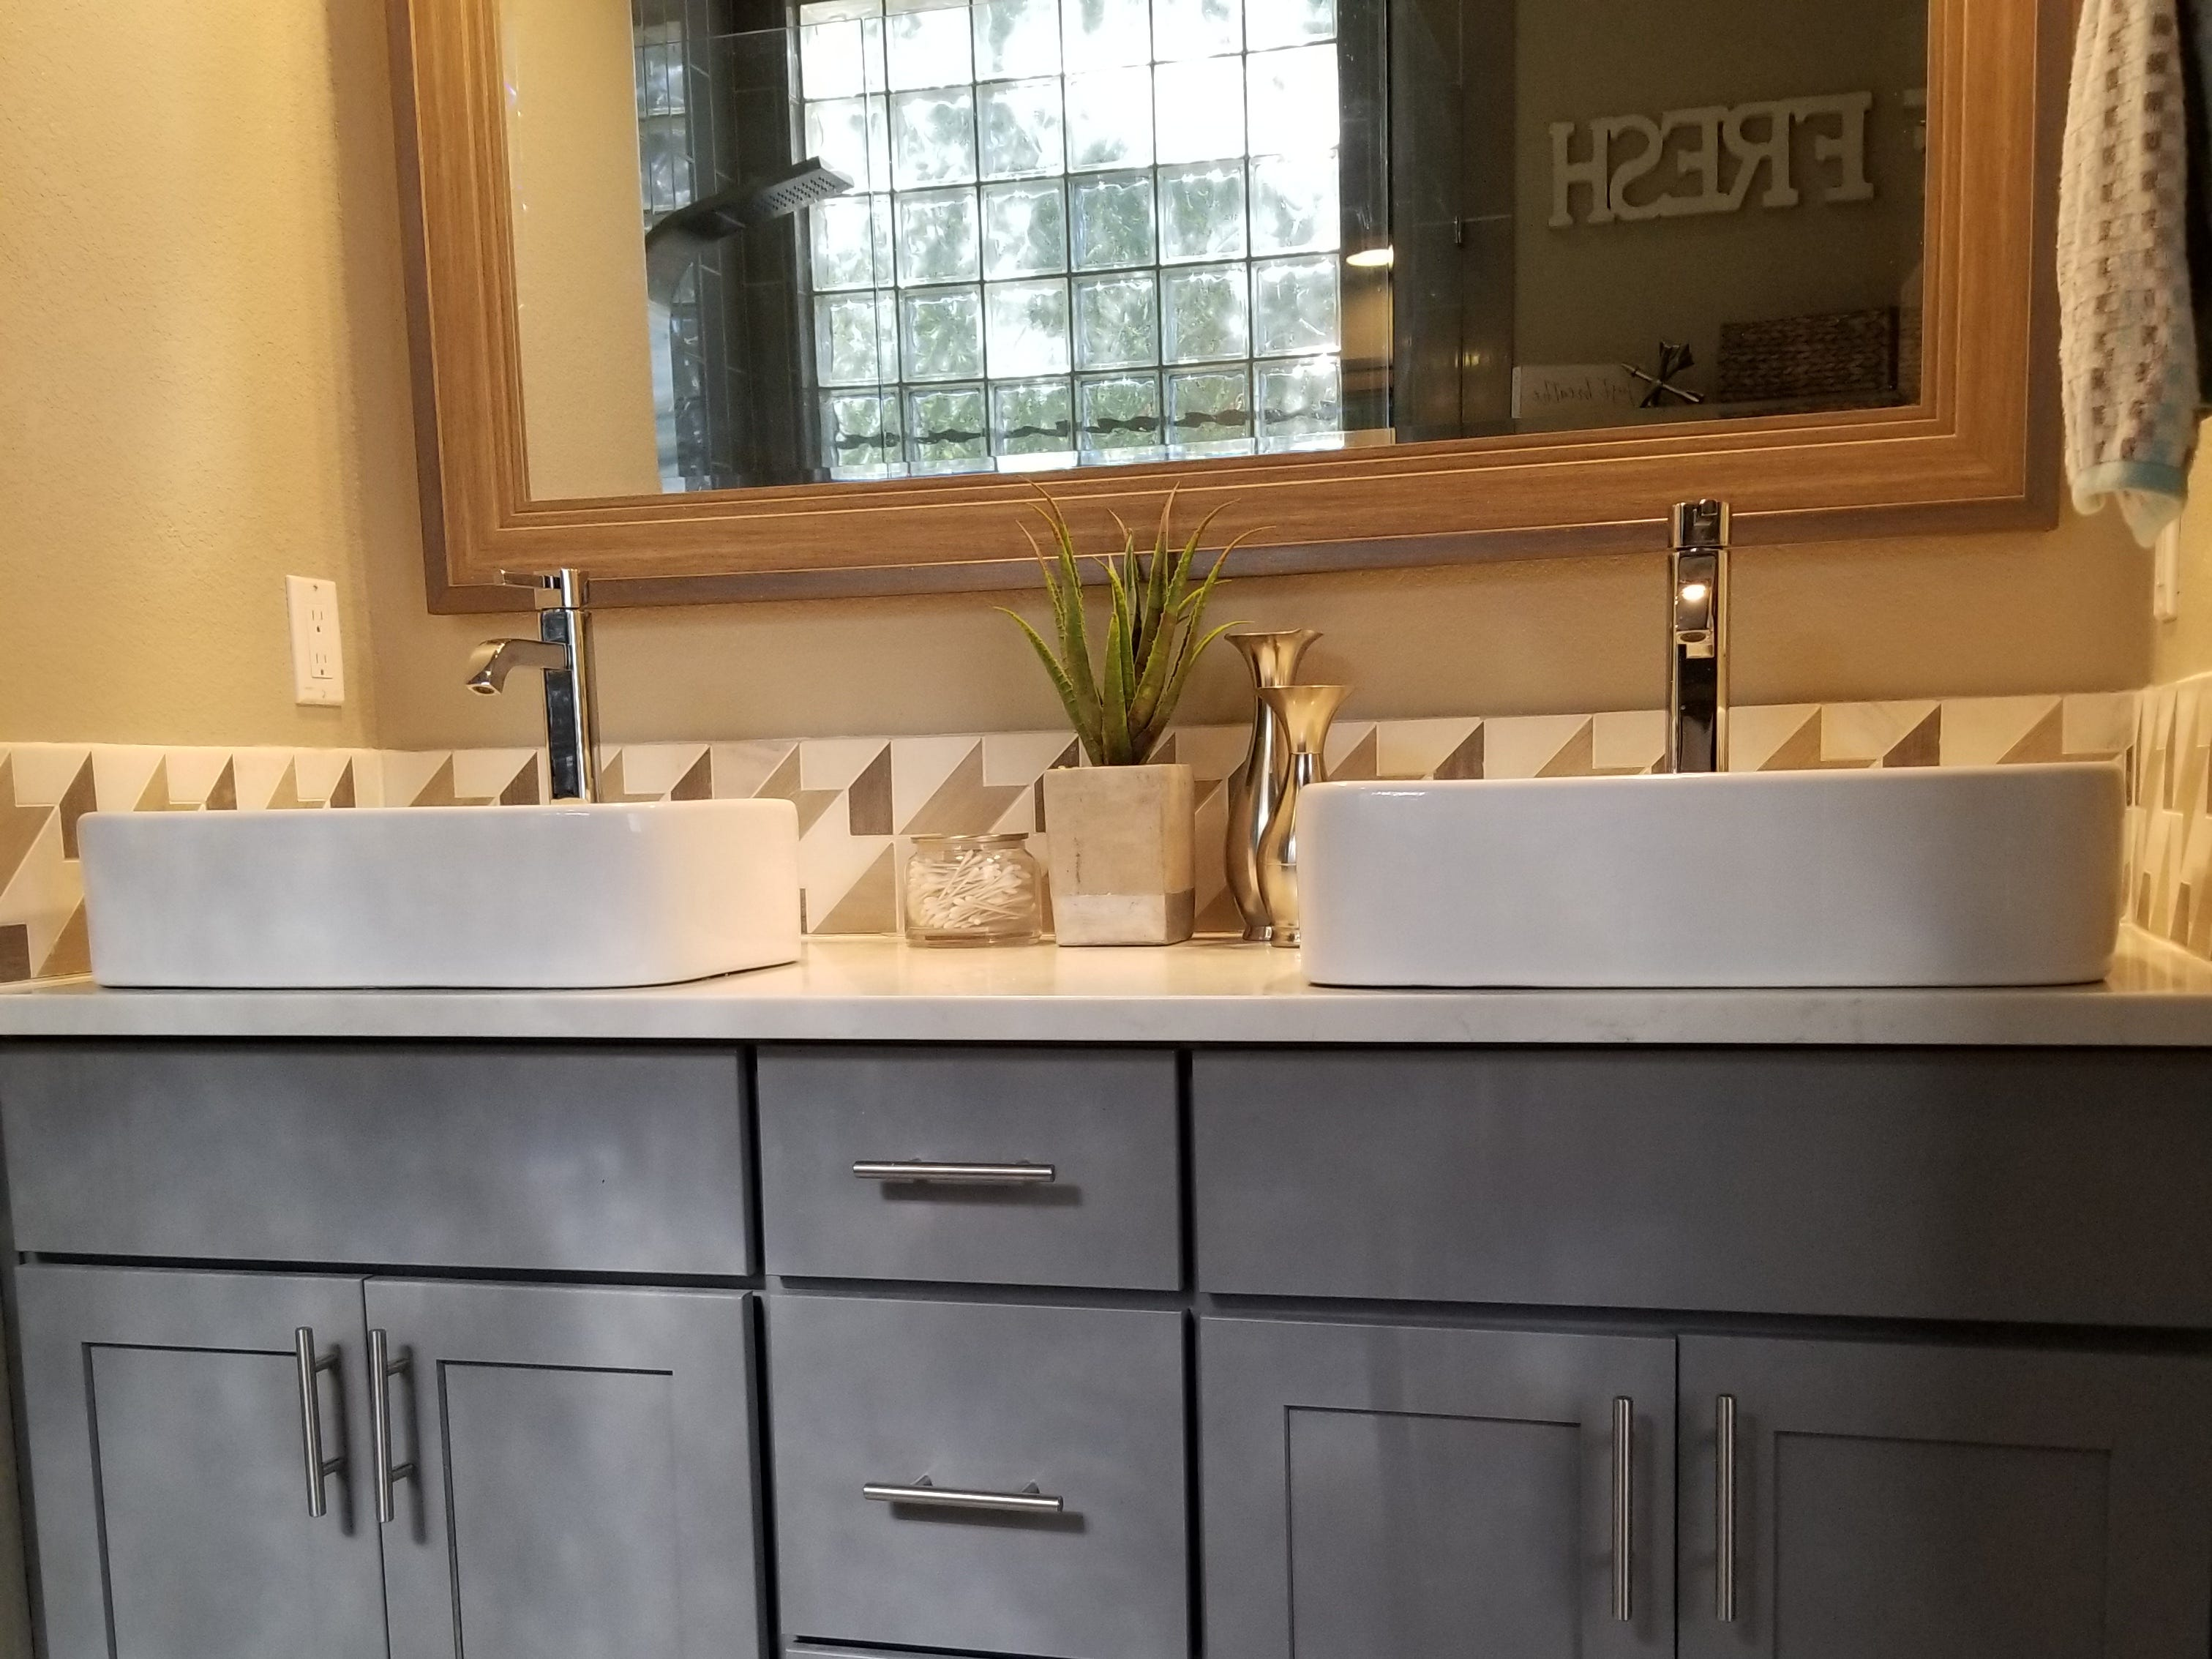 A complete tear-down was worth the end result, which is nothing short of spectacular.  Light grey subway tile set vertically with lighter grout lines replaced a garden tub. Product niches situated below the glass block, and positioned behind a bench seat add depth and interest to the design. A blend of 1-inch tiles in whites and greys define the shower floor. As if the shower head purchased online with multiple functions and separate hand-held nozzle doesn't seal the deal, the installation of clear glass doors deliver the final punch of sophistication and exquisite style. Kris, the sweat equity star of the home, removed and replaced the original builder double vanity with one sporting the grey palette resplendent throughout the home. Both sinks share a large rectangular mirror.  Industrial shelving and a metal chair now occupy the space assigned the original builder shower.